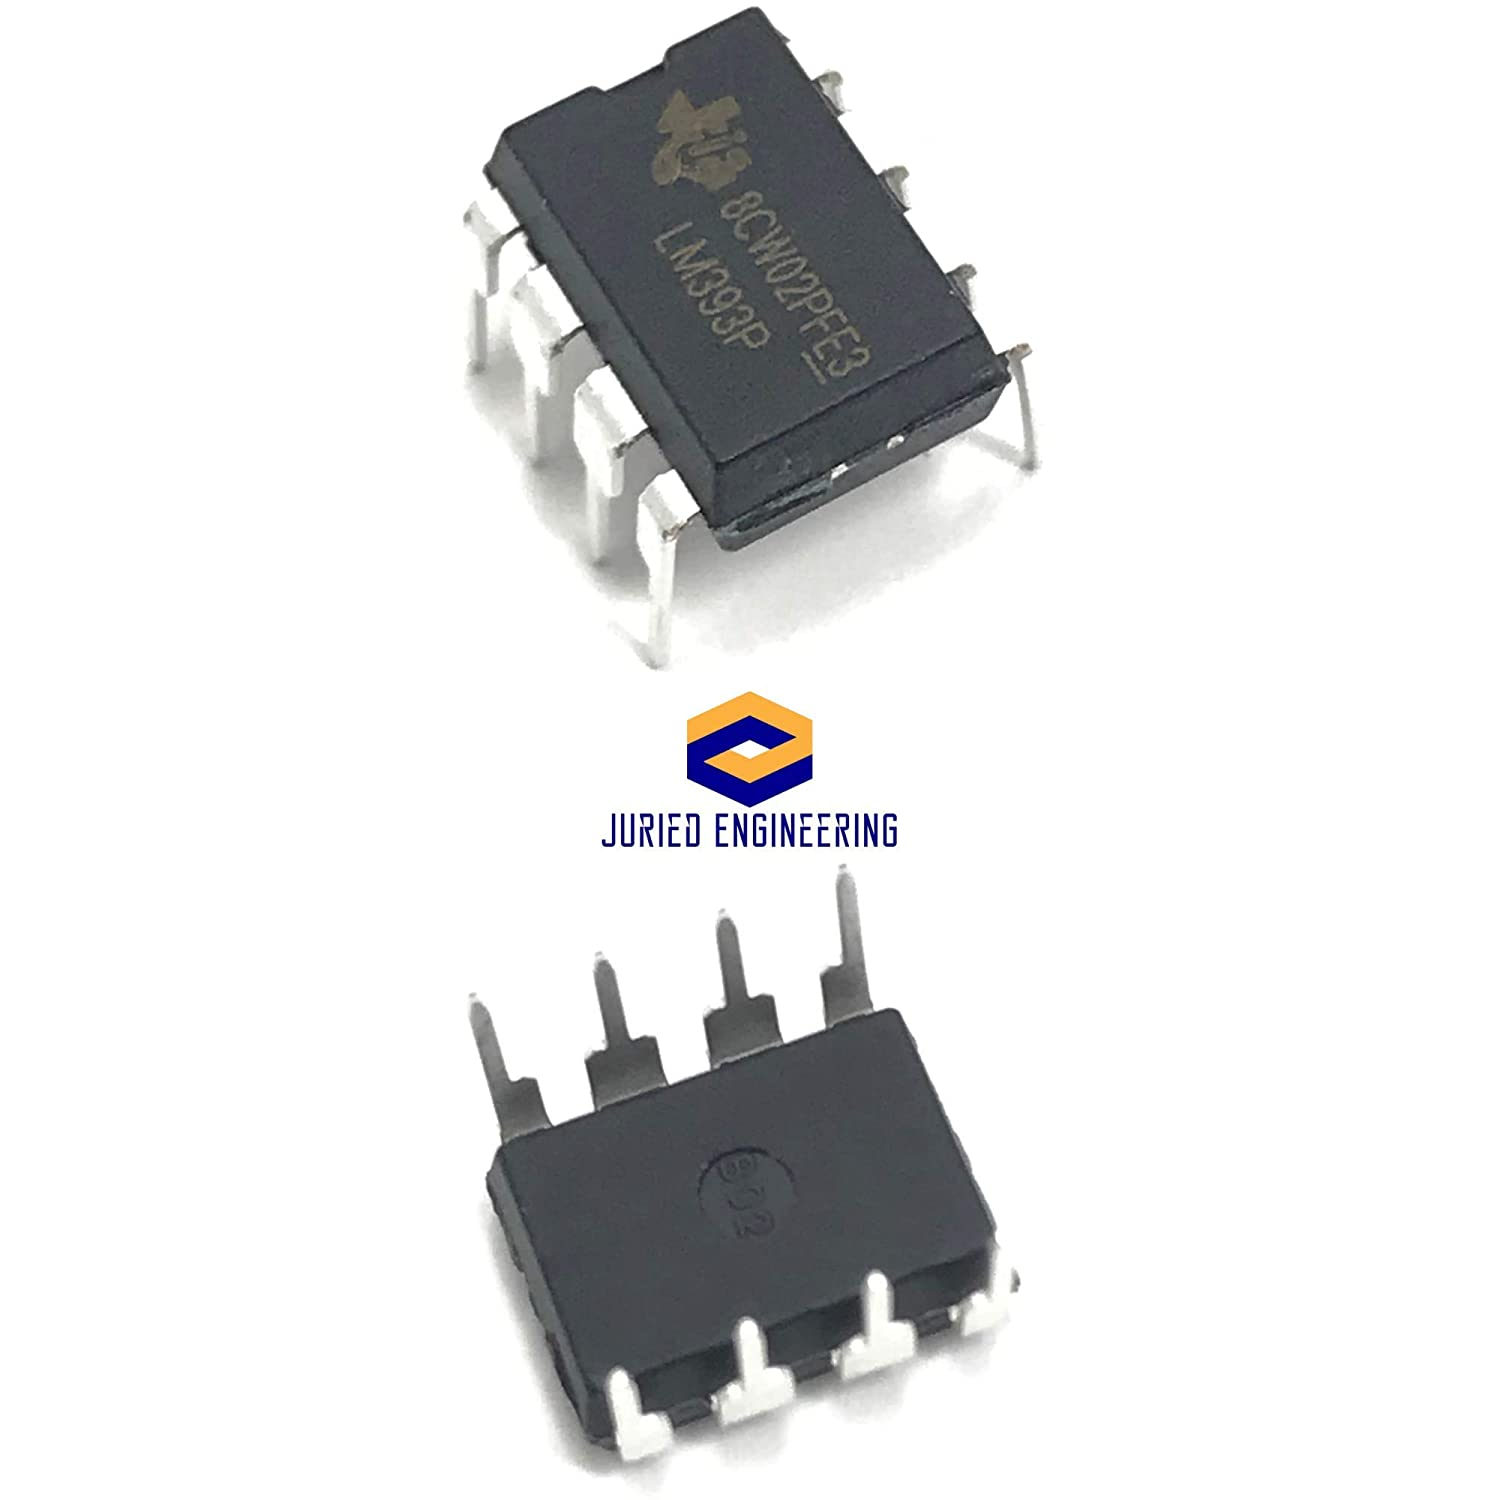 FREE SHIPPING 5 x LM393N LM393 IC LOW POWER DUAL VOLTAGE COMPARATORS